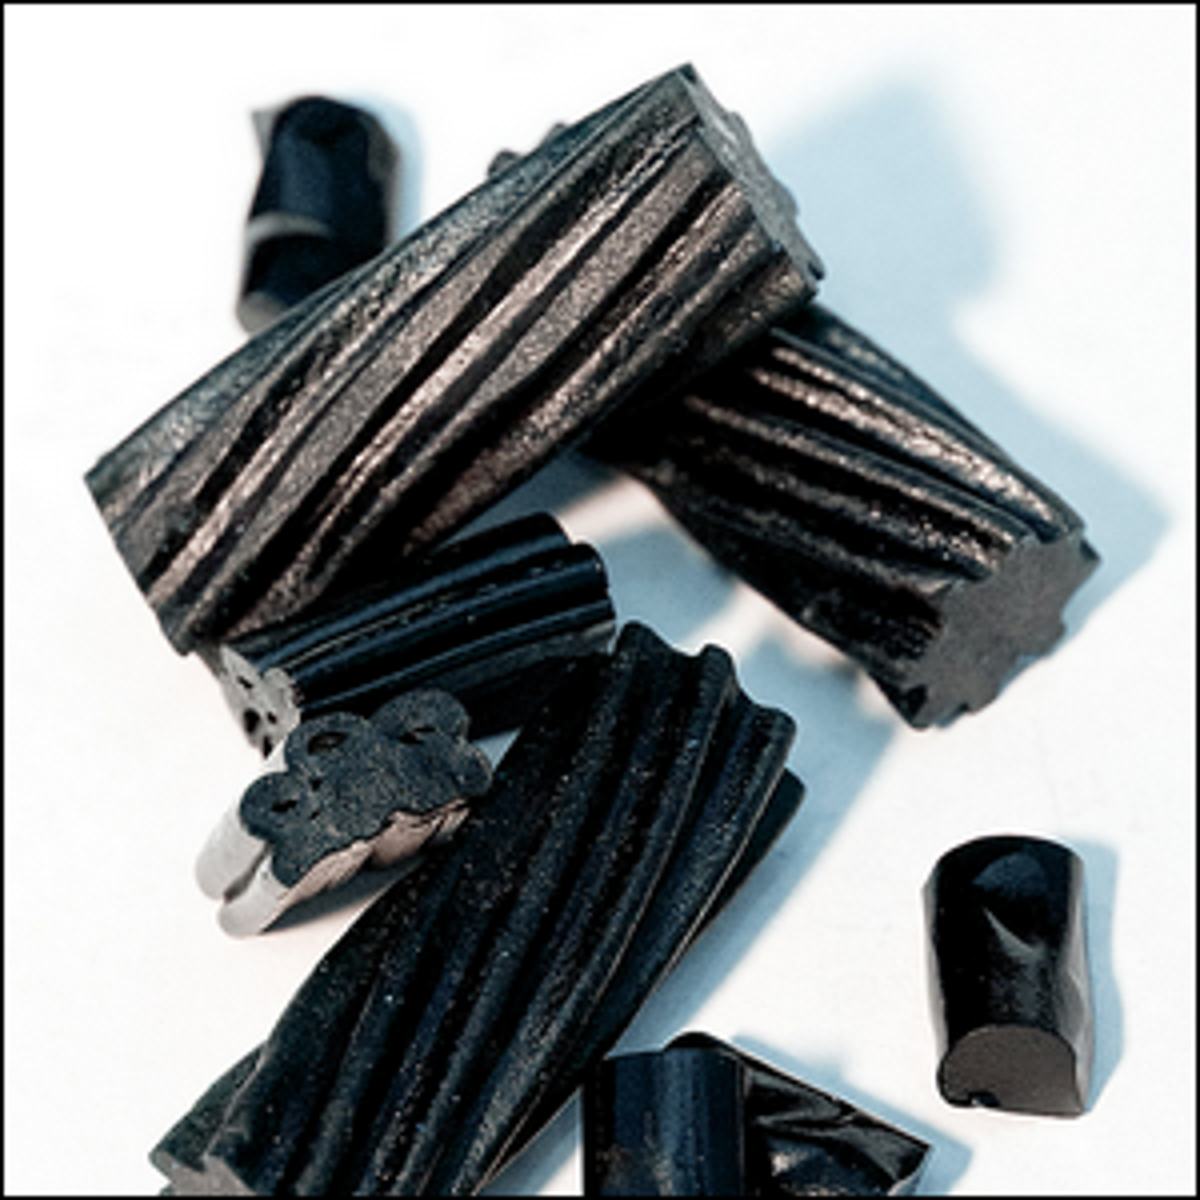 A close up view of a pile of licorice candy.